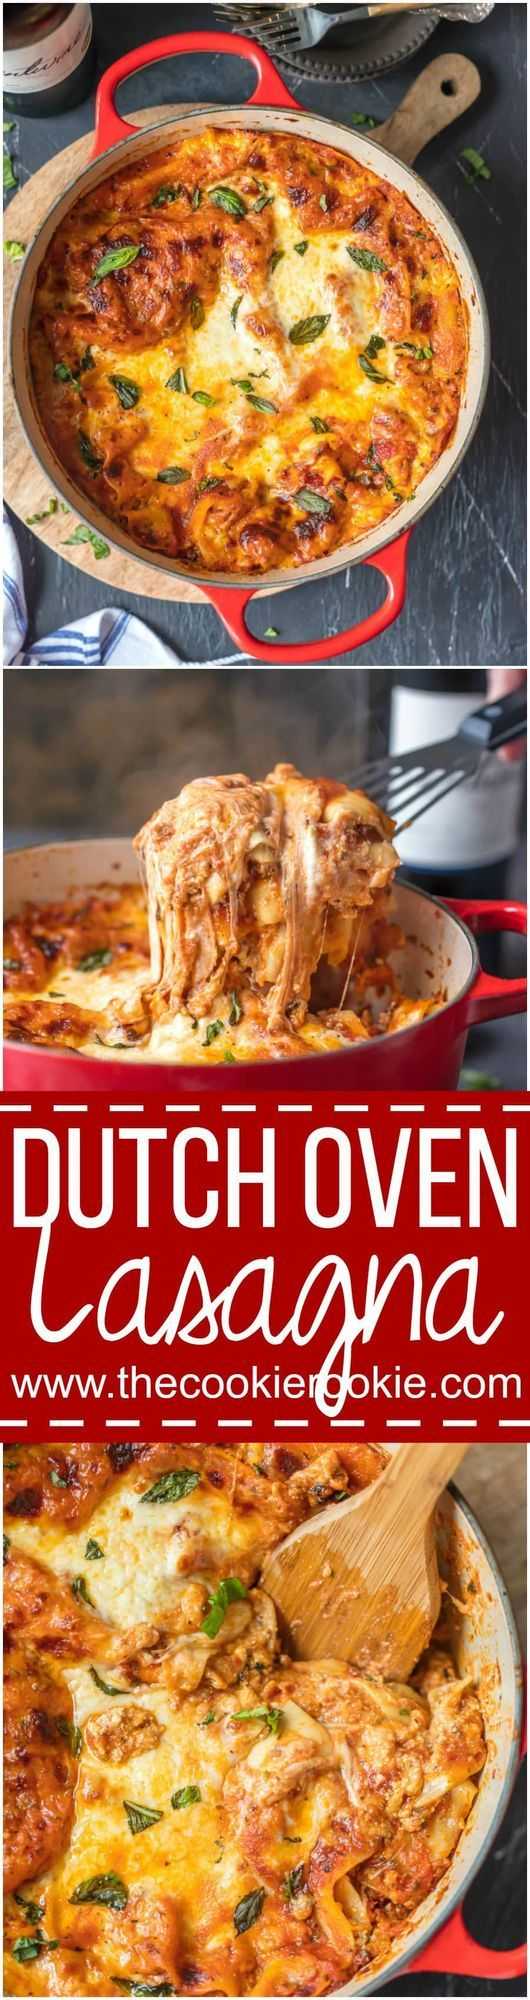 This DUTCH OVEN LASAGNA will blow your mind! You'll never make traditional lasagna again after making this easy stove-top version. We are addicted to this recipe!  TIME FOR COMFORT FOOD! And the ultim